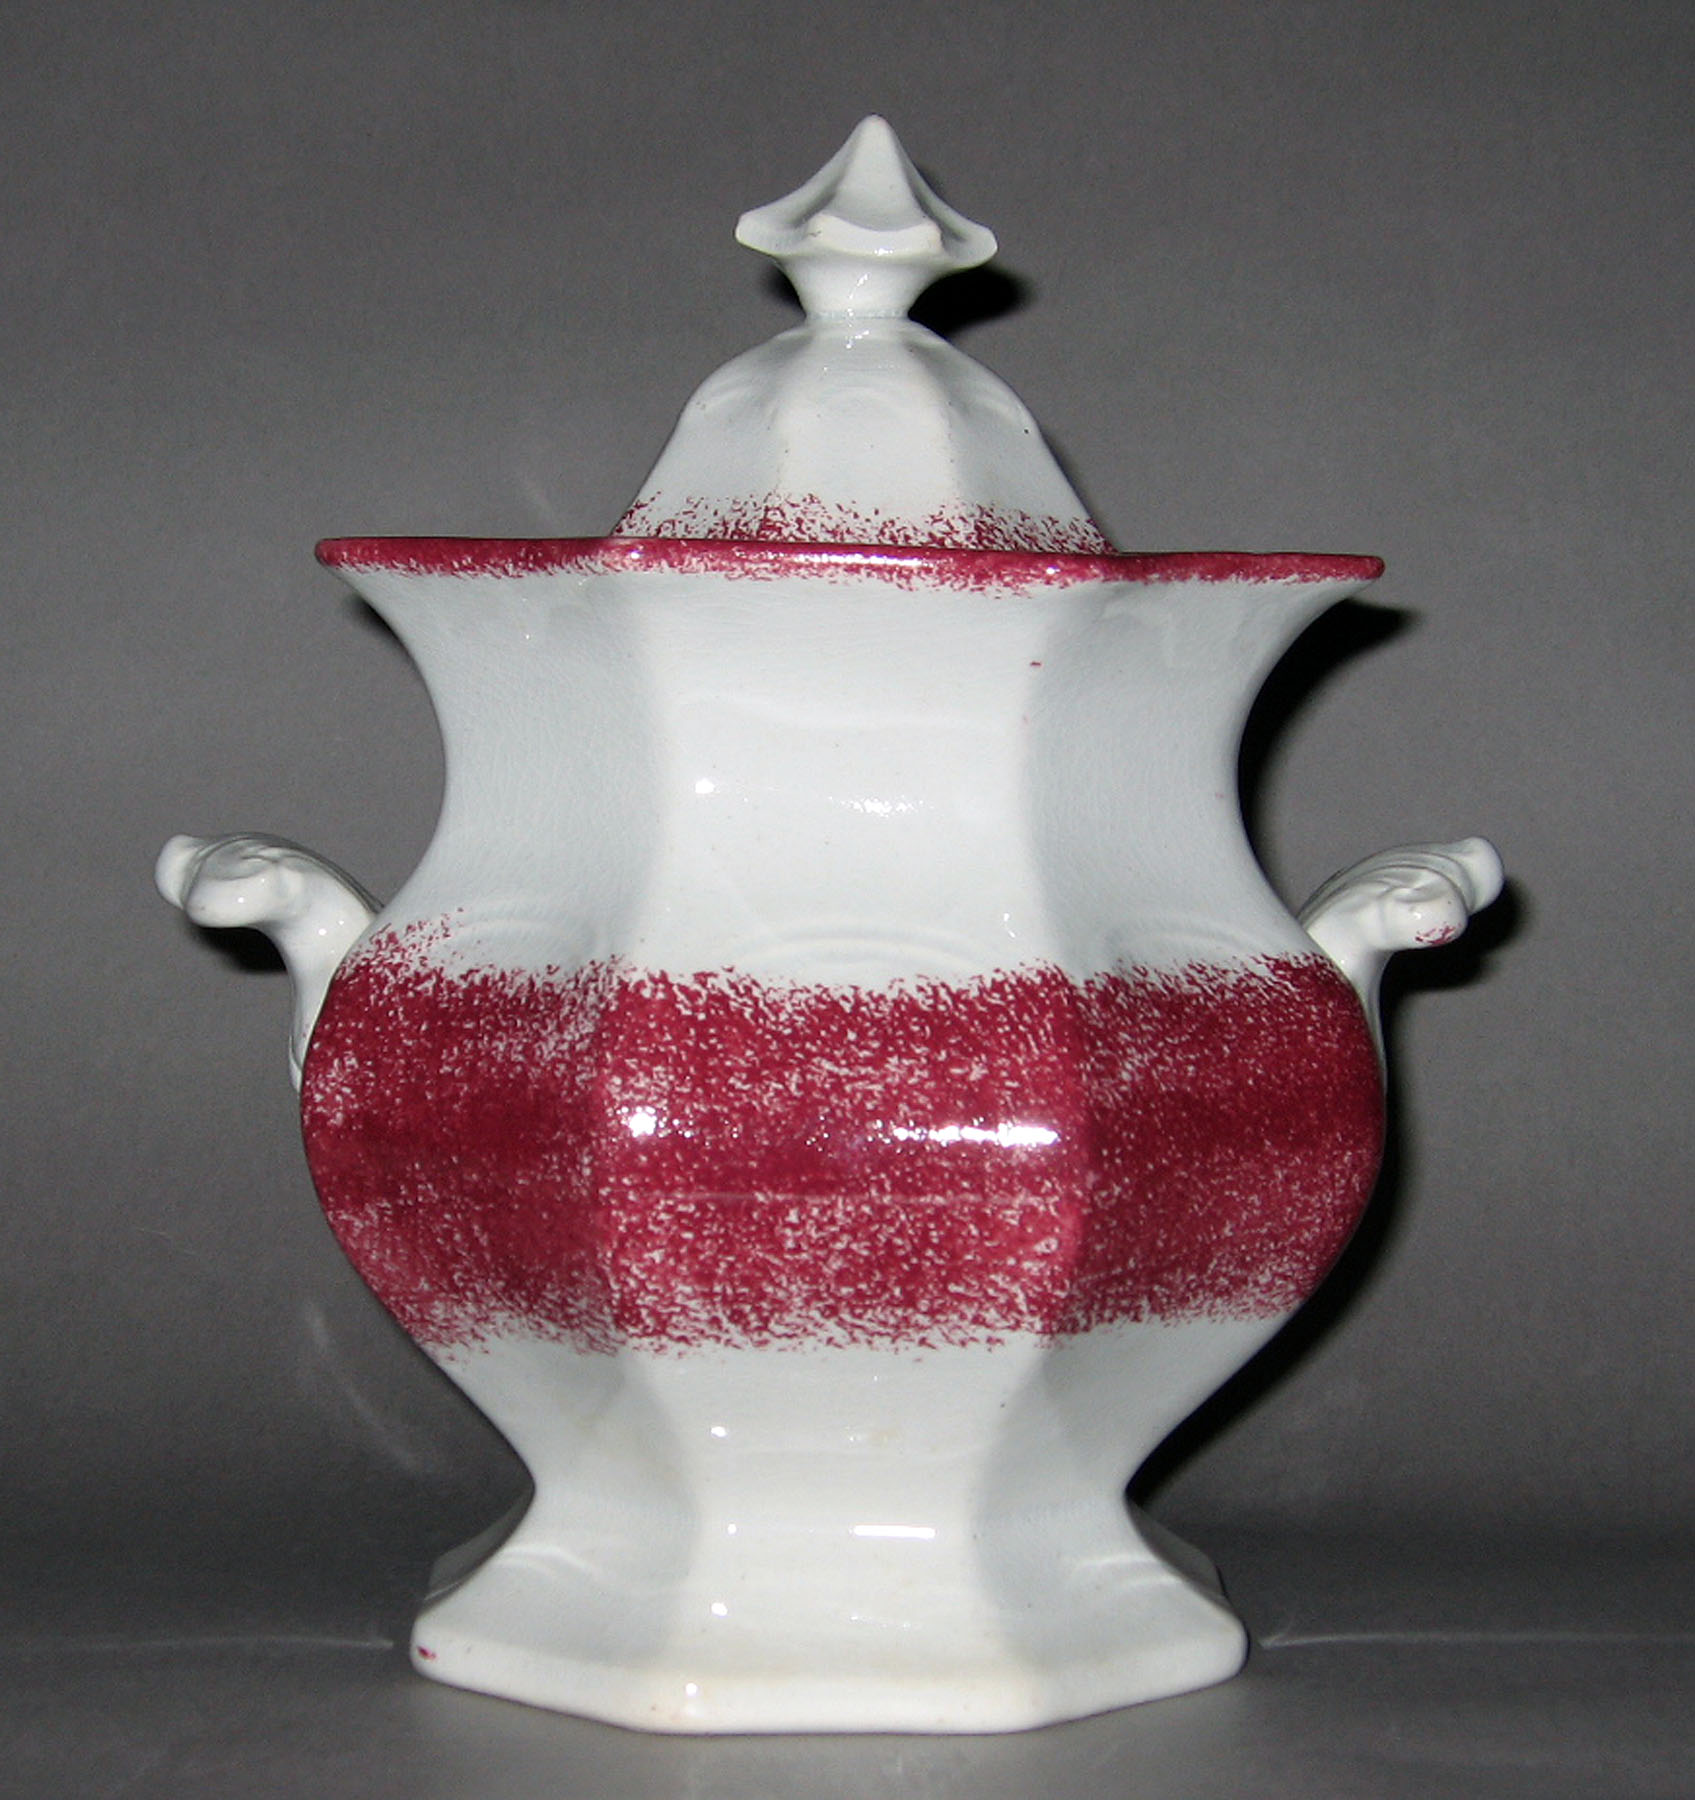 1965.0750 Spatterware sugar bowl